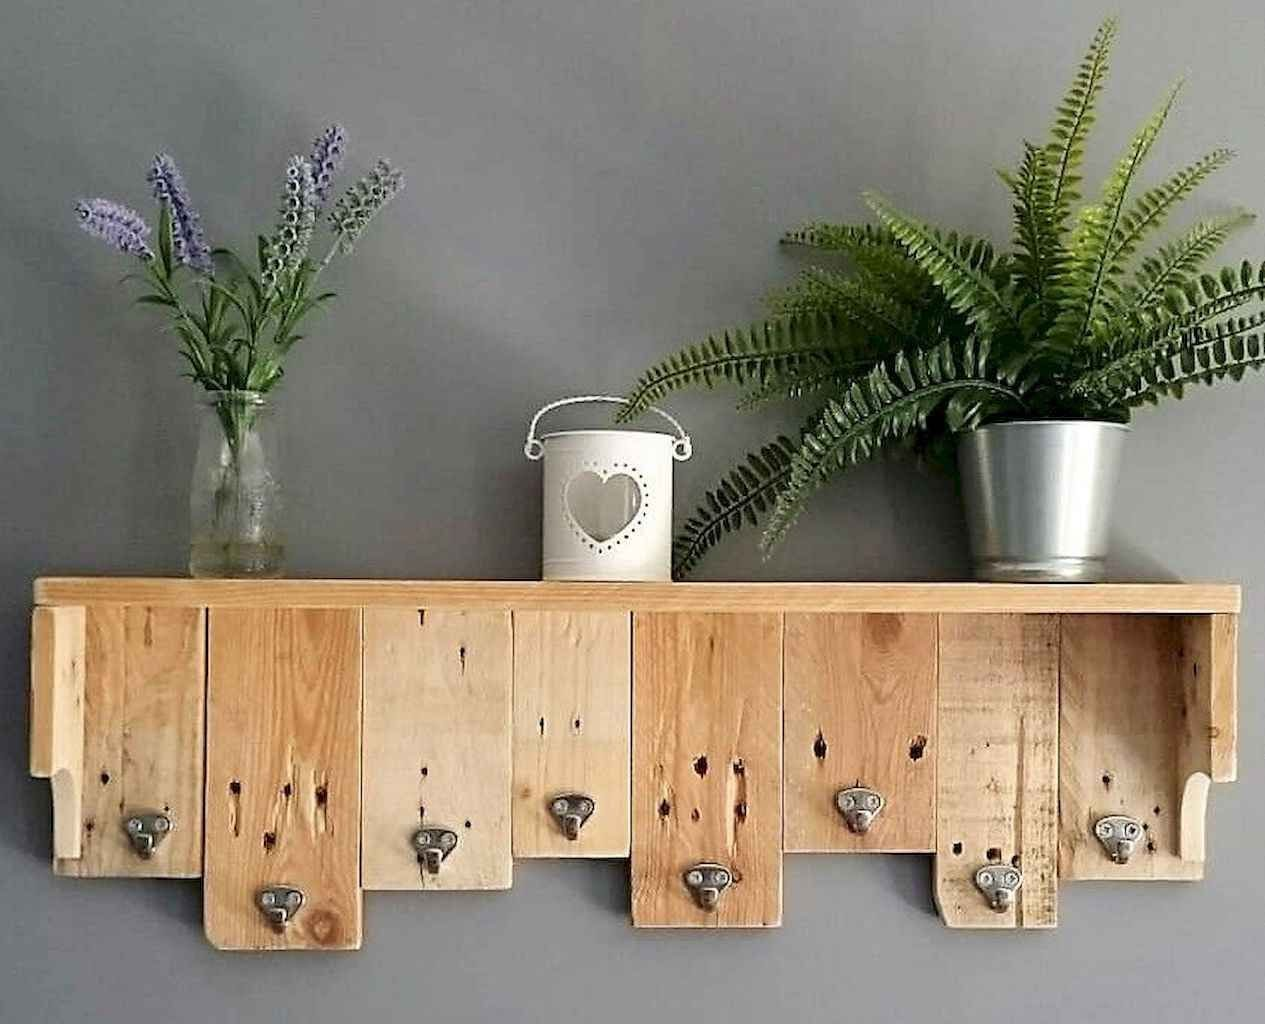 DIY Recycled Pallet Wood Project Ideas